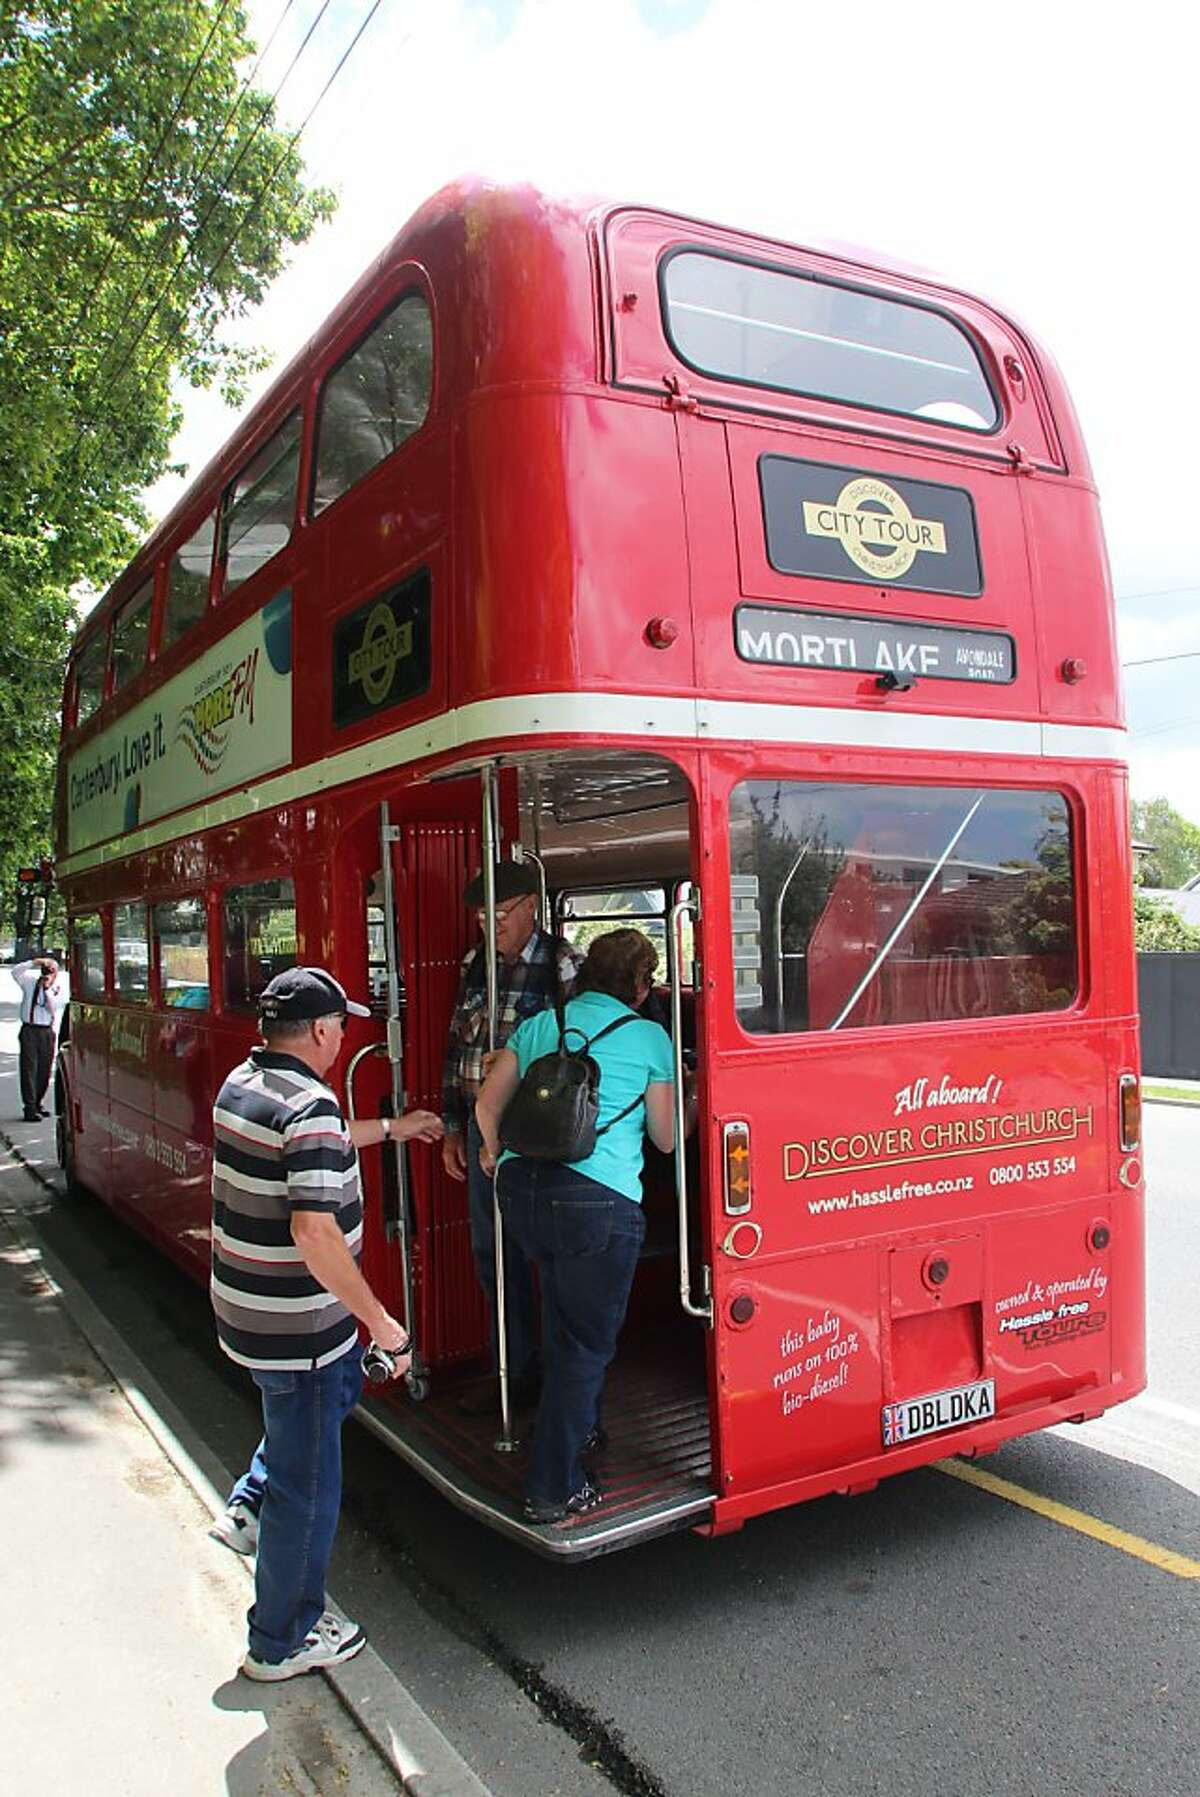 Passengers board an original London double-decker bus for a city tour of Christchurch, N.Z., that focuses on the destruction from that city's earthquakes, as well as on attractions that escaped damage.